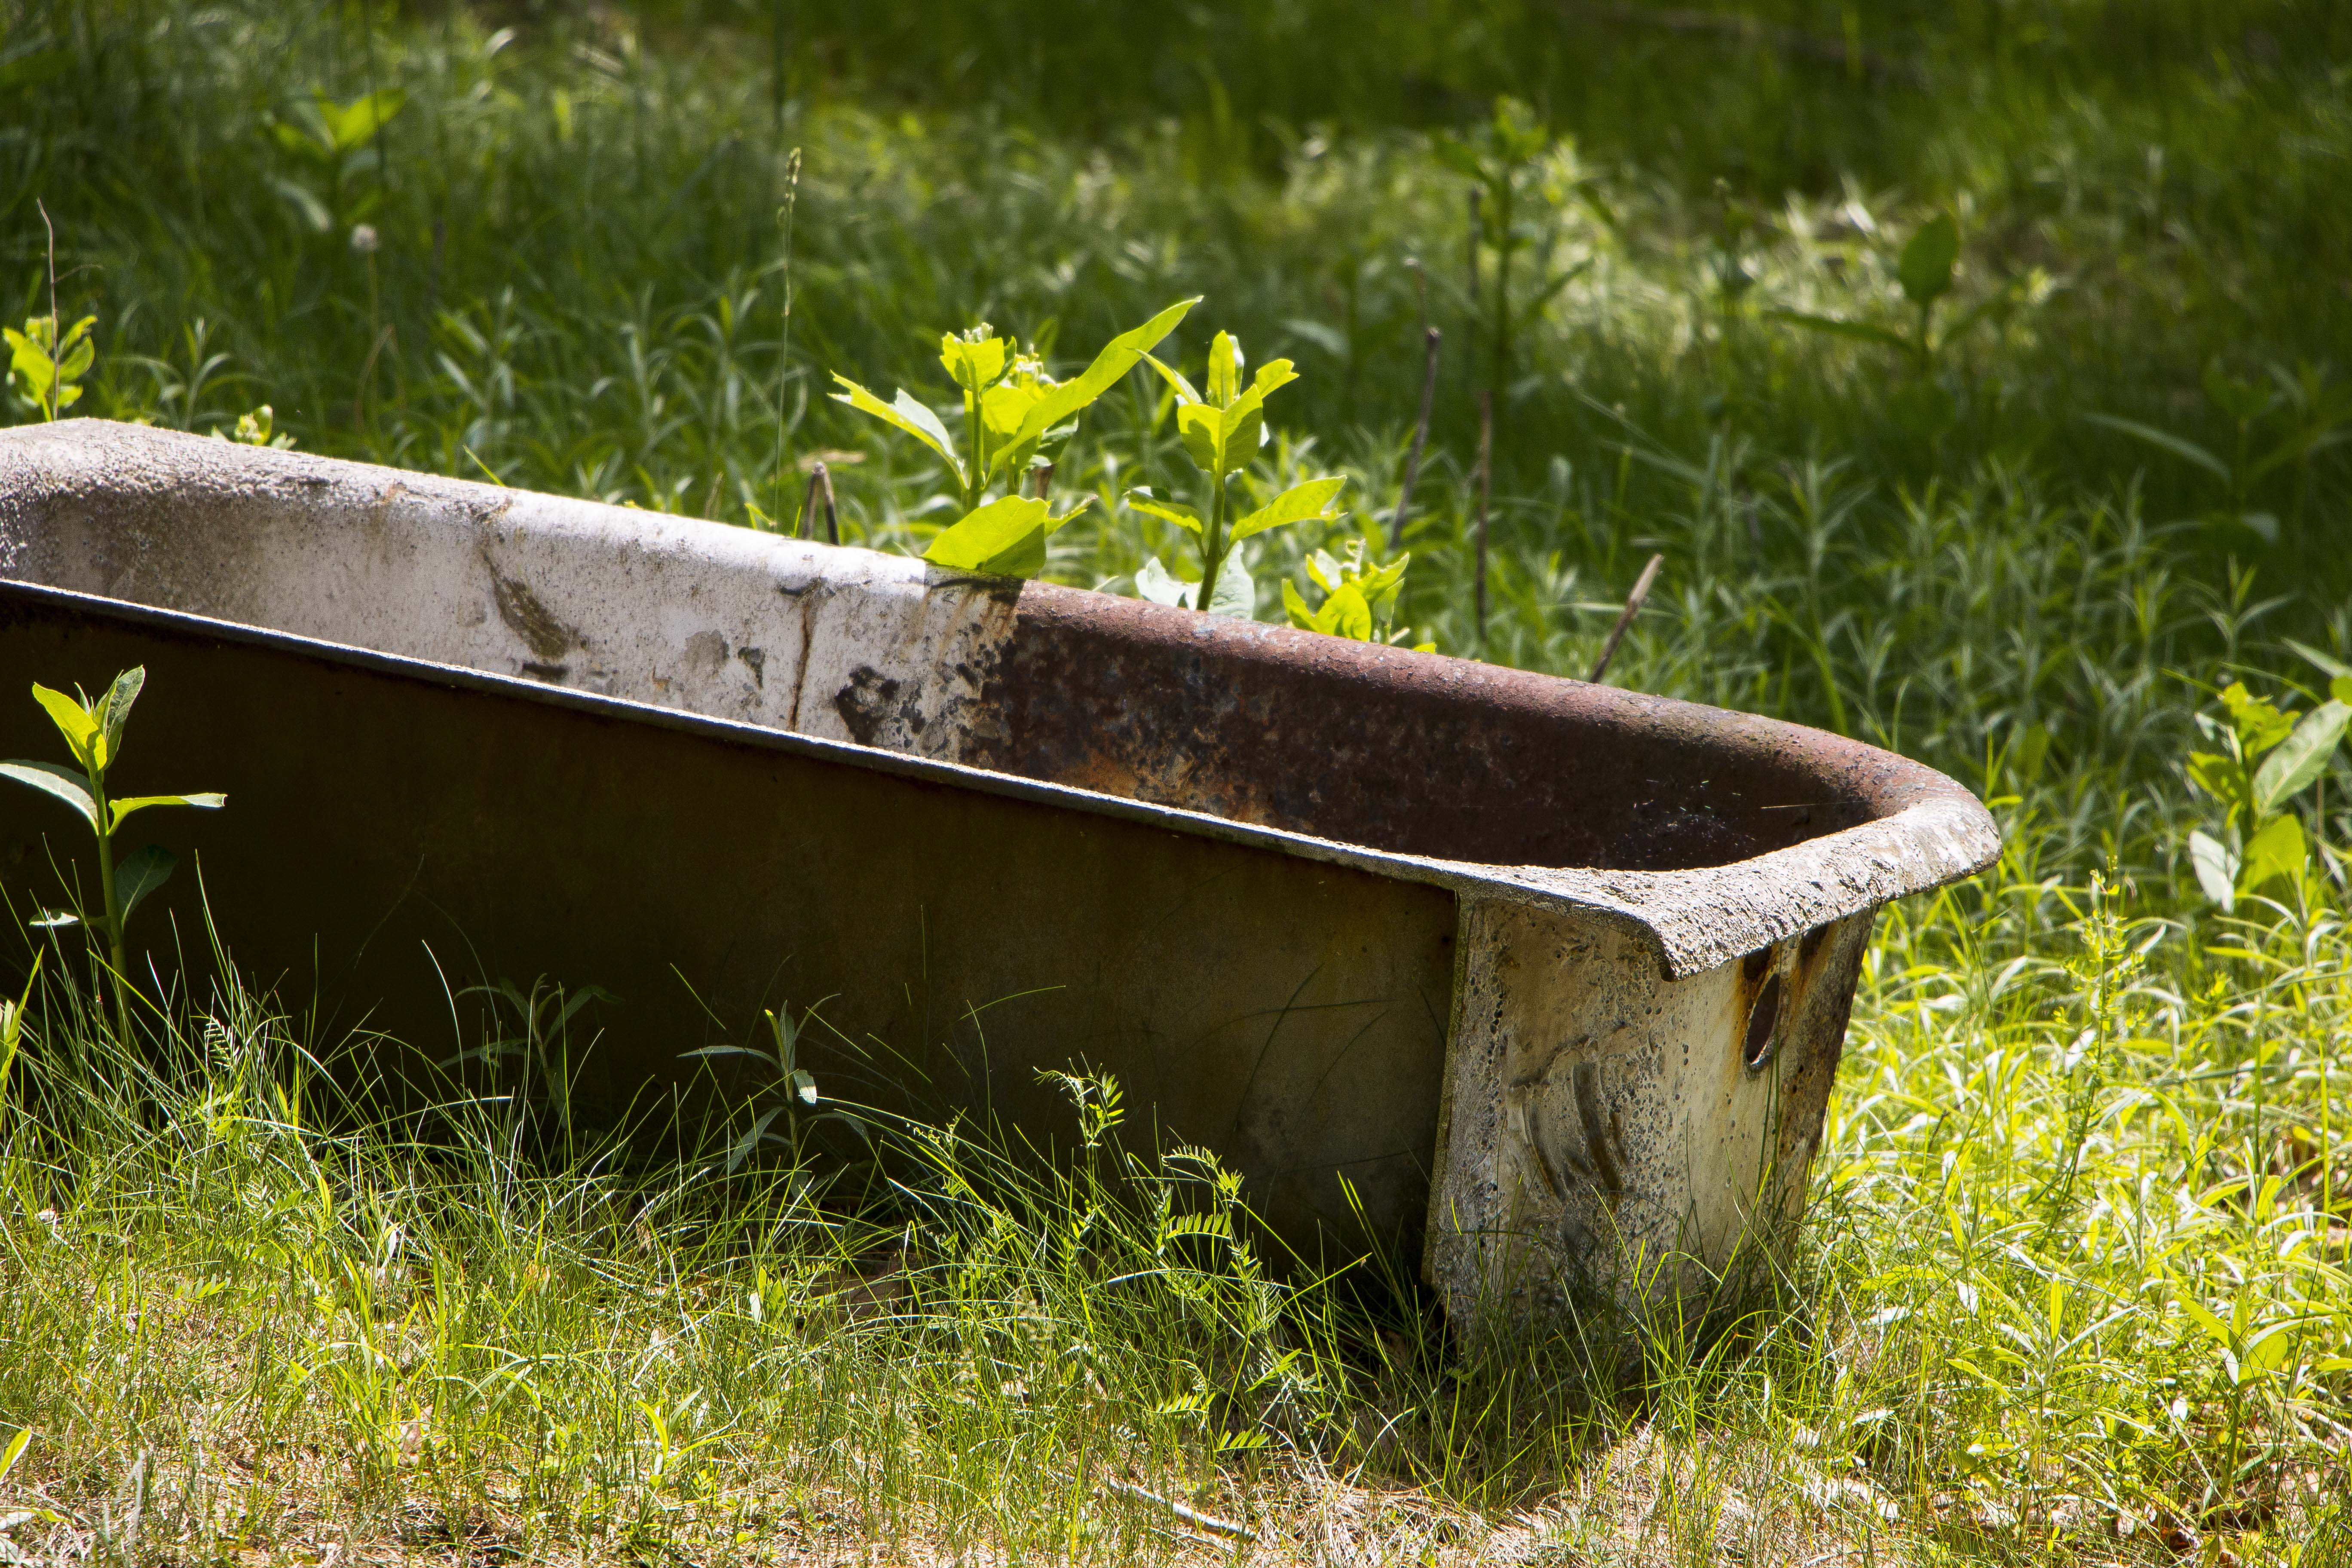 Tub in a field 1